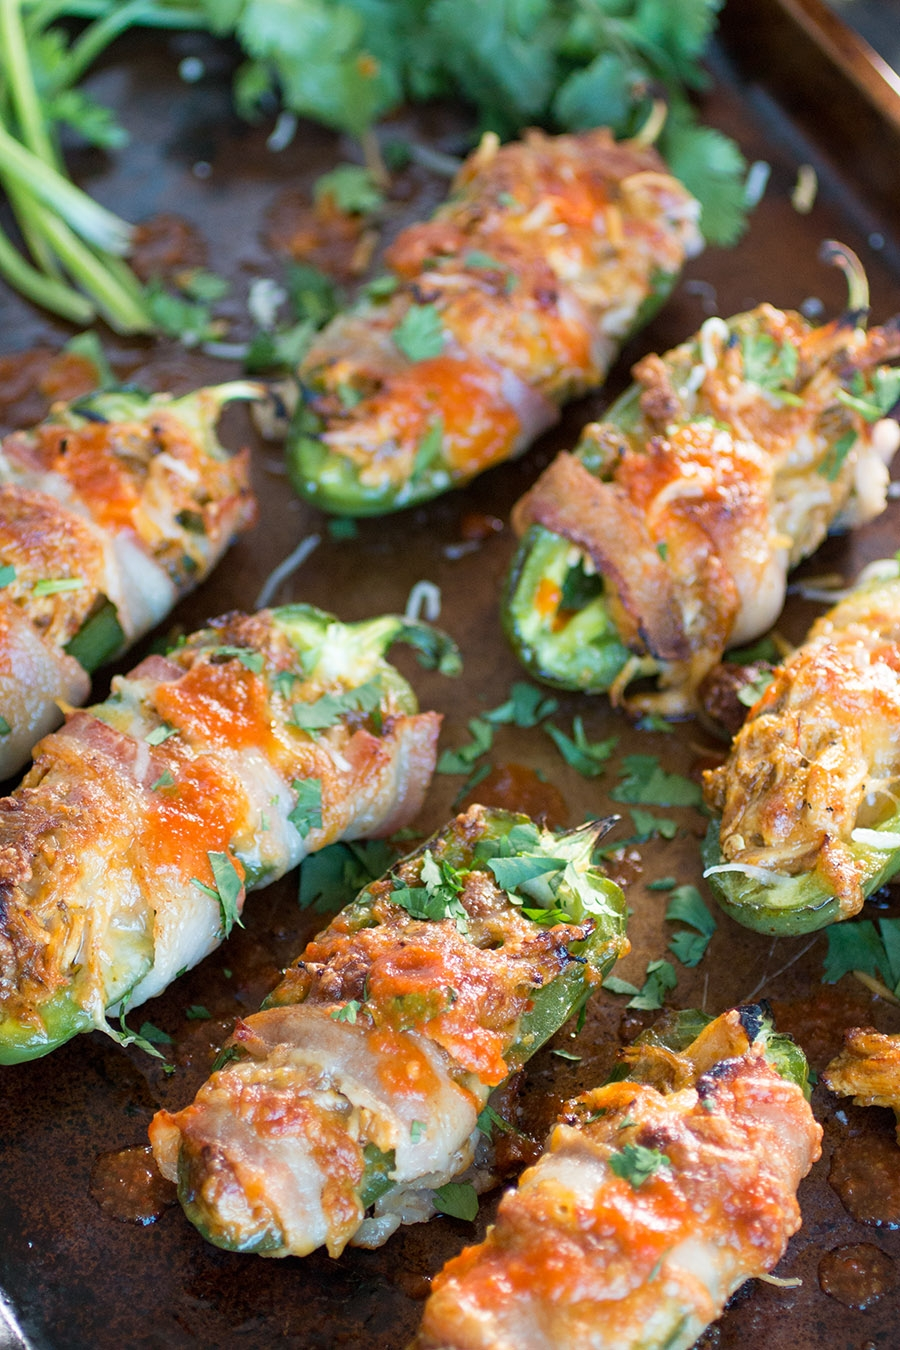 Bacon Wrapped Jalapeno Poppers with Shredded Chicken and Cheese